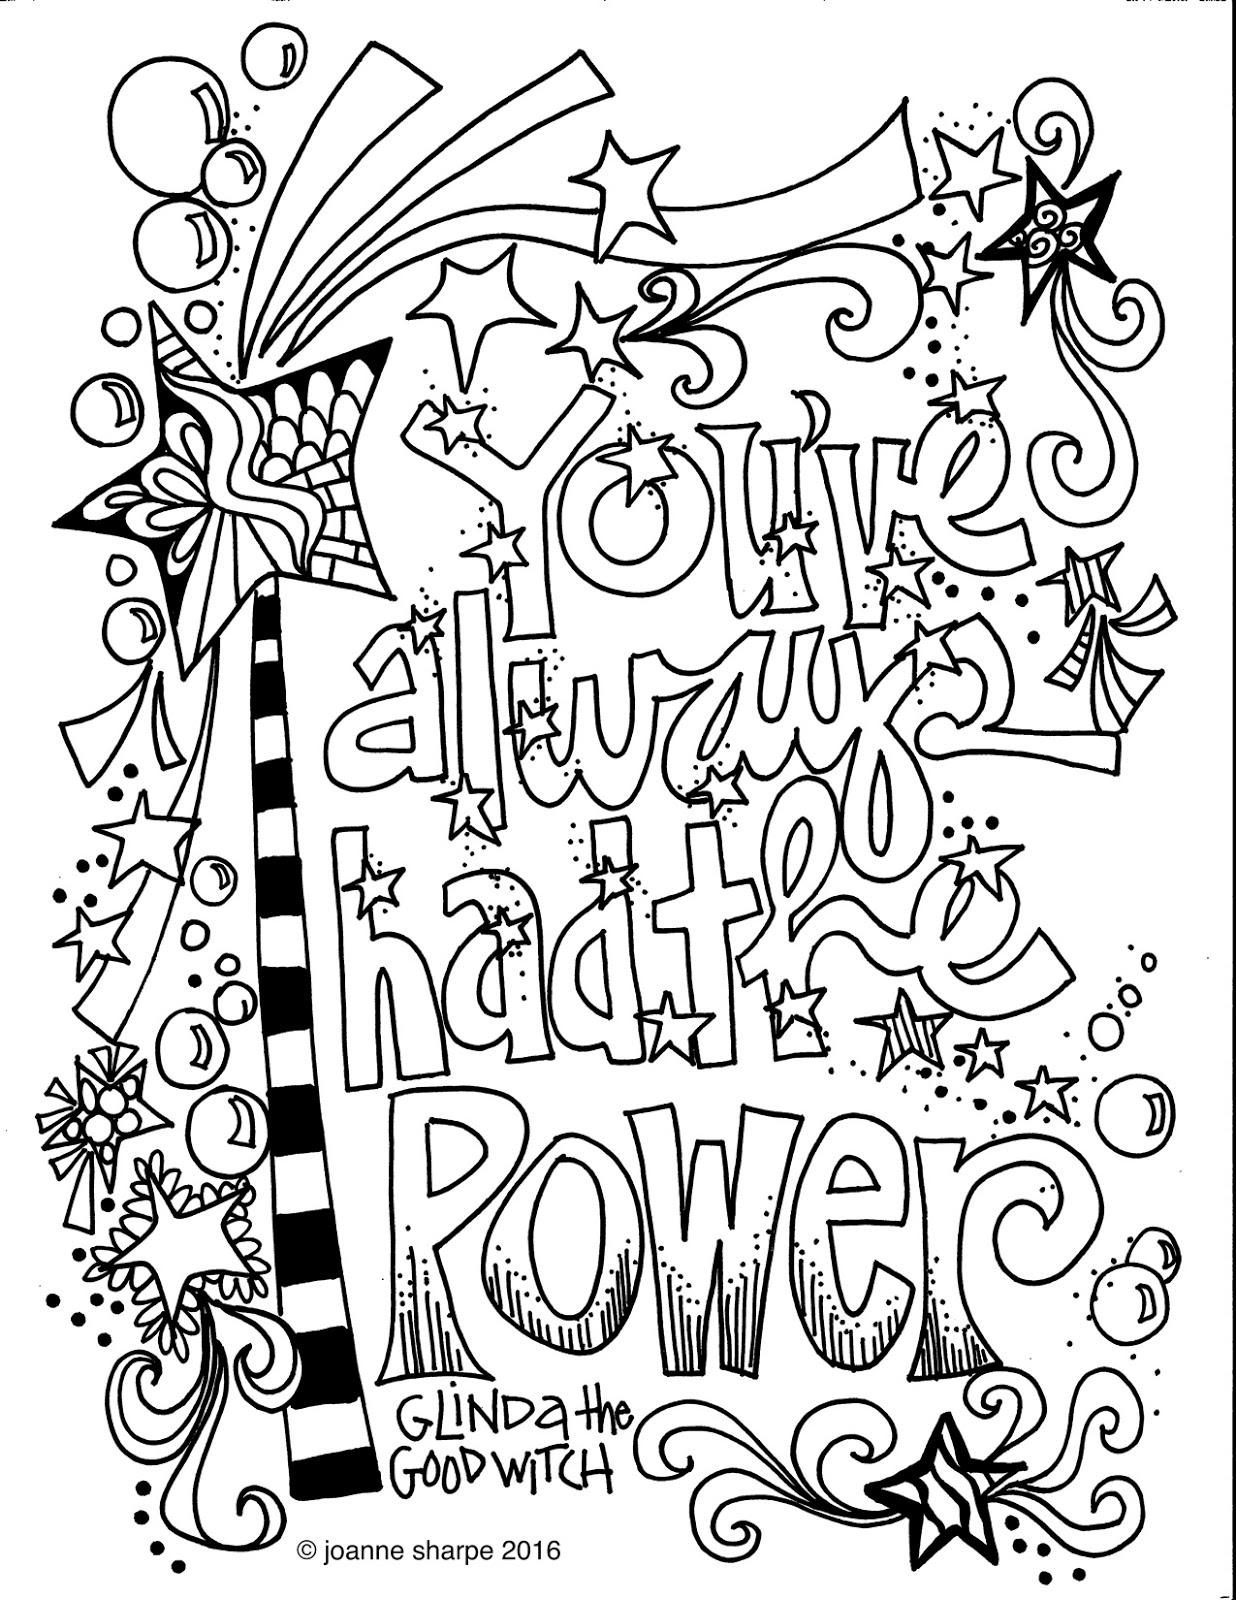 quote about colouring some of the best things in life are mistakes there is no colouring quote about